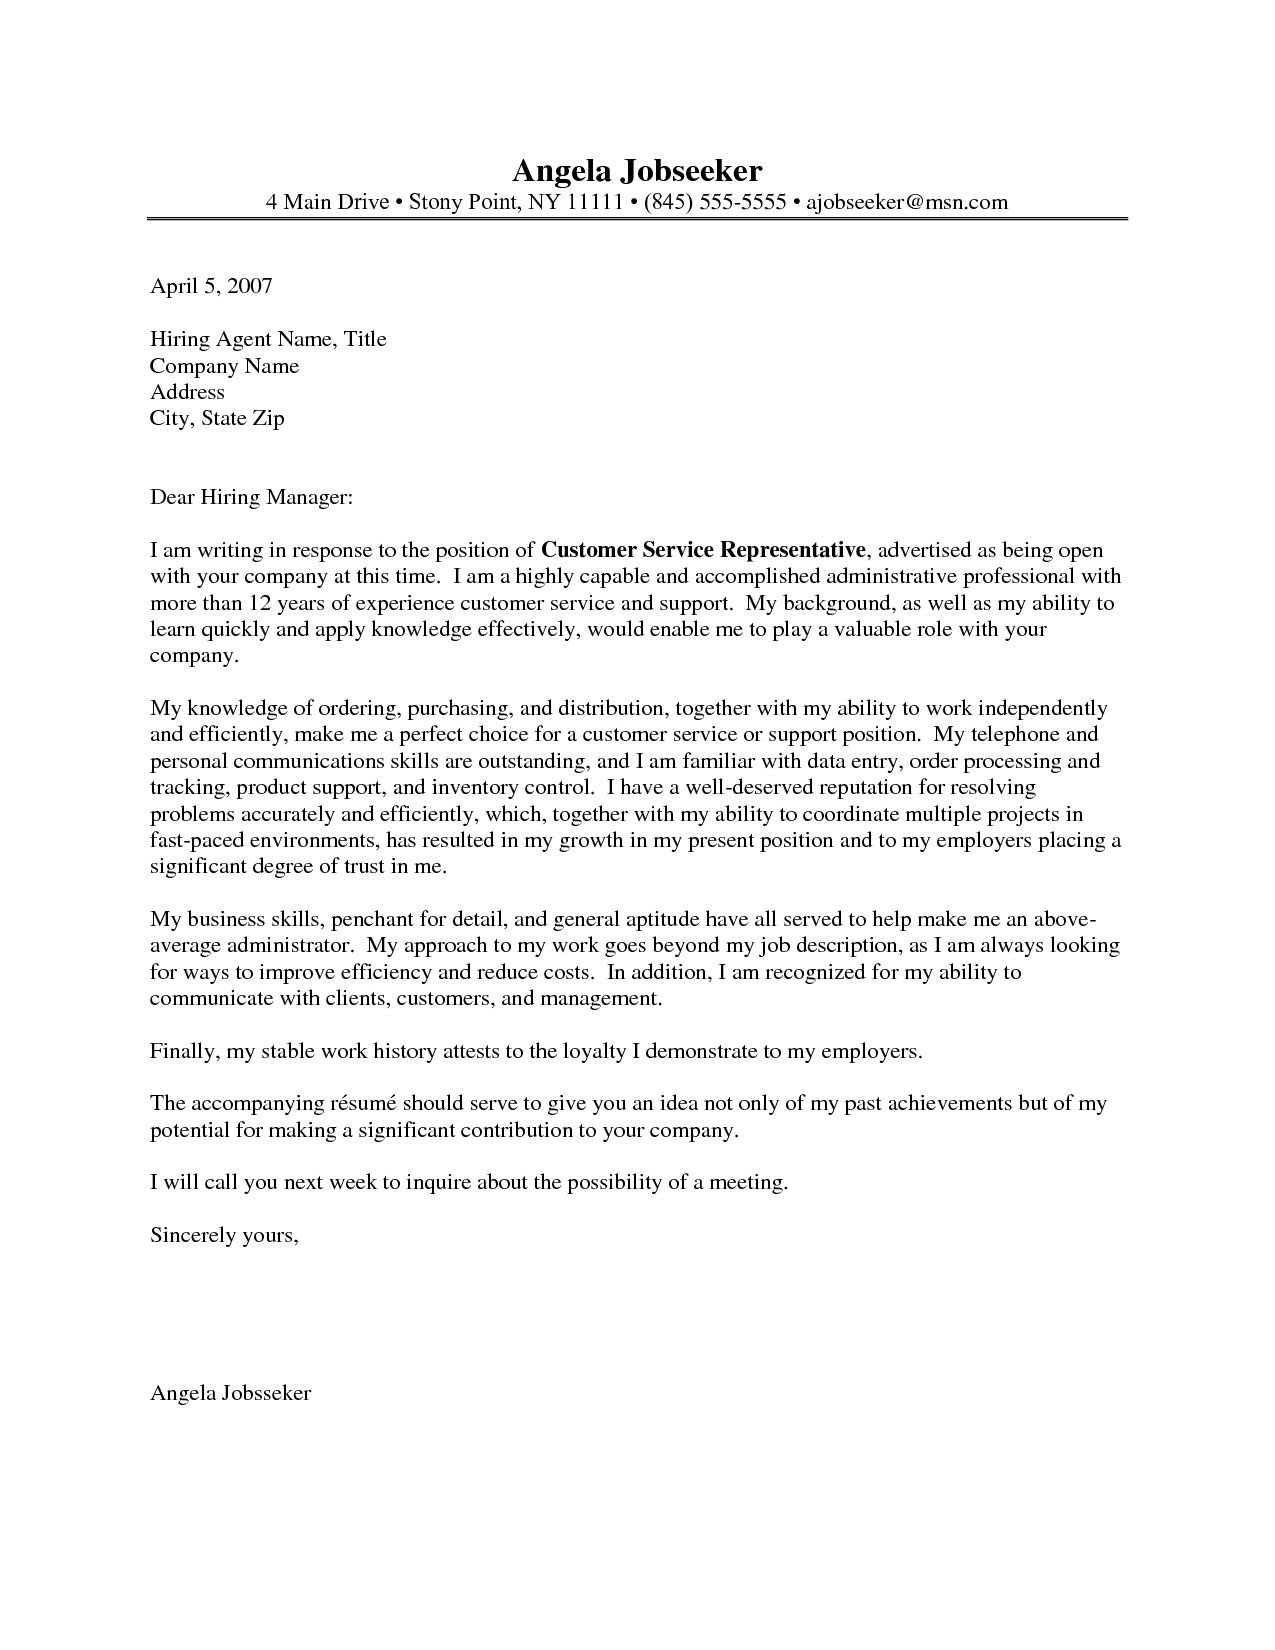 23 Customer Service Representative Cover Letter Professional Letters Photographic